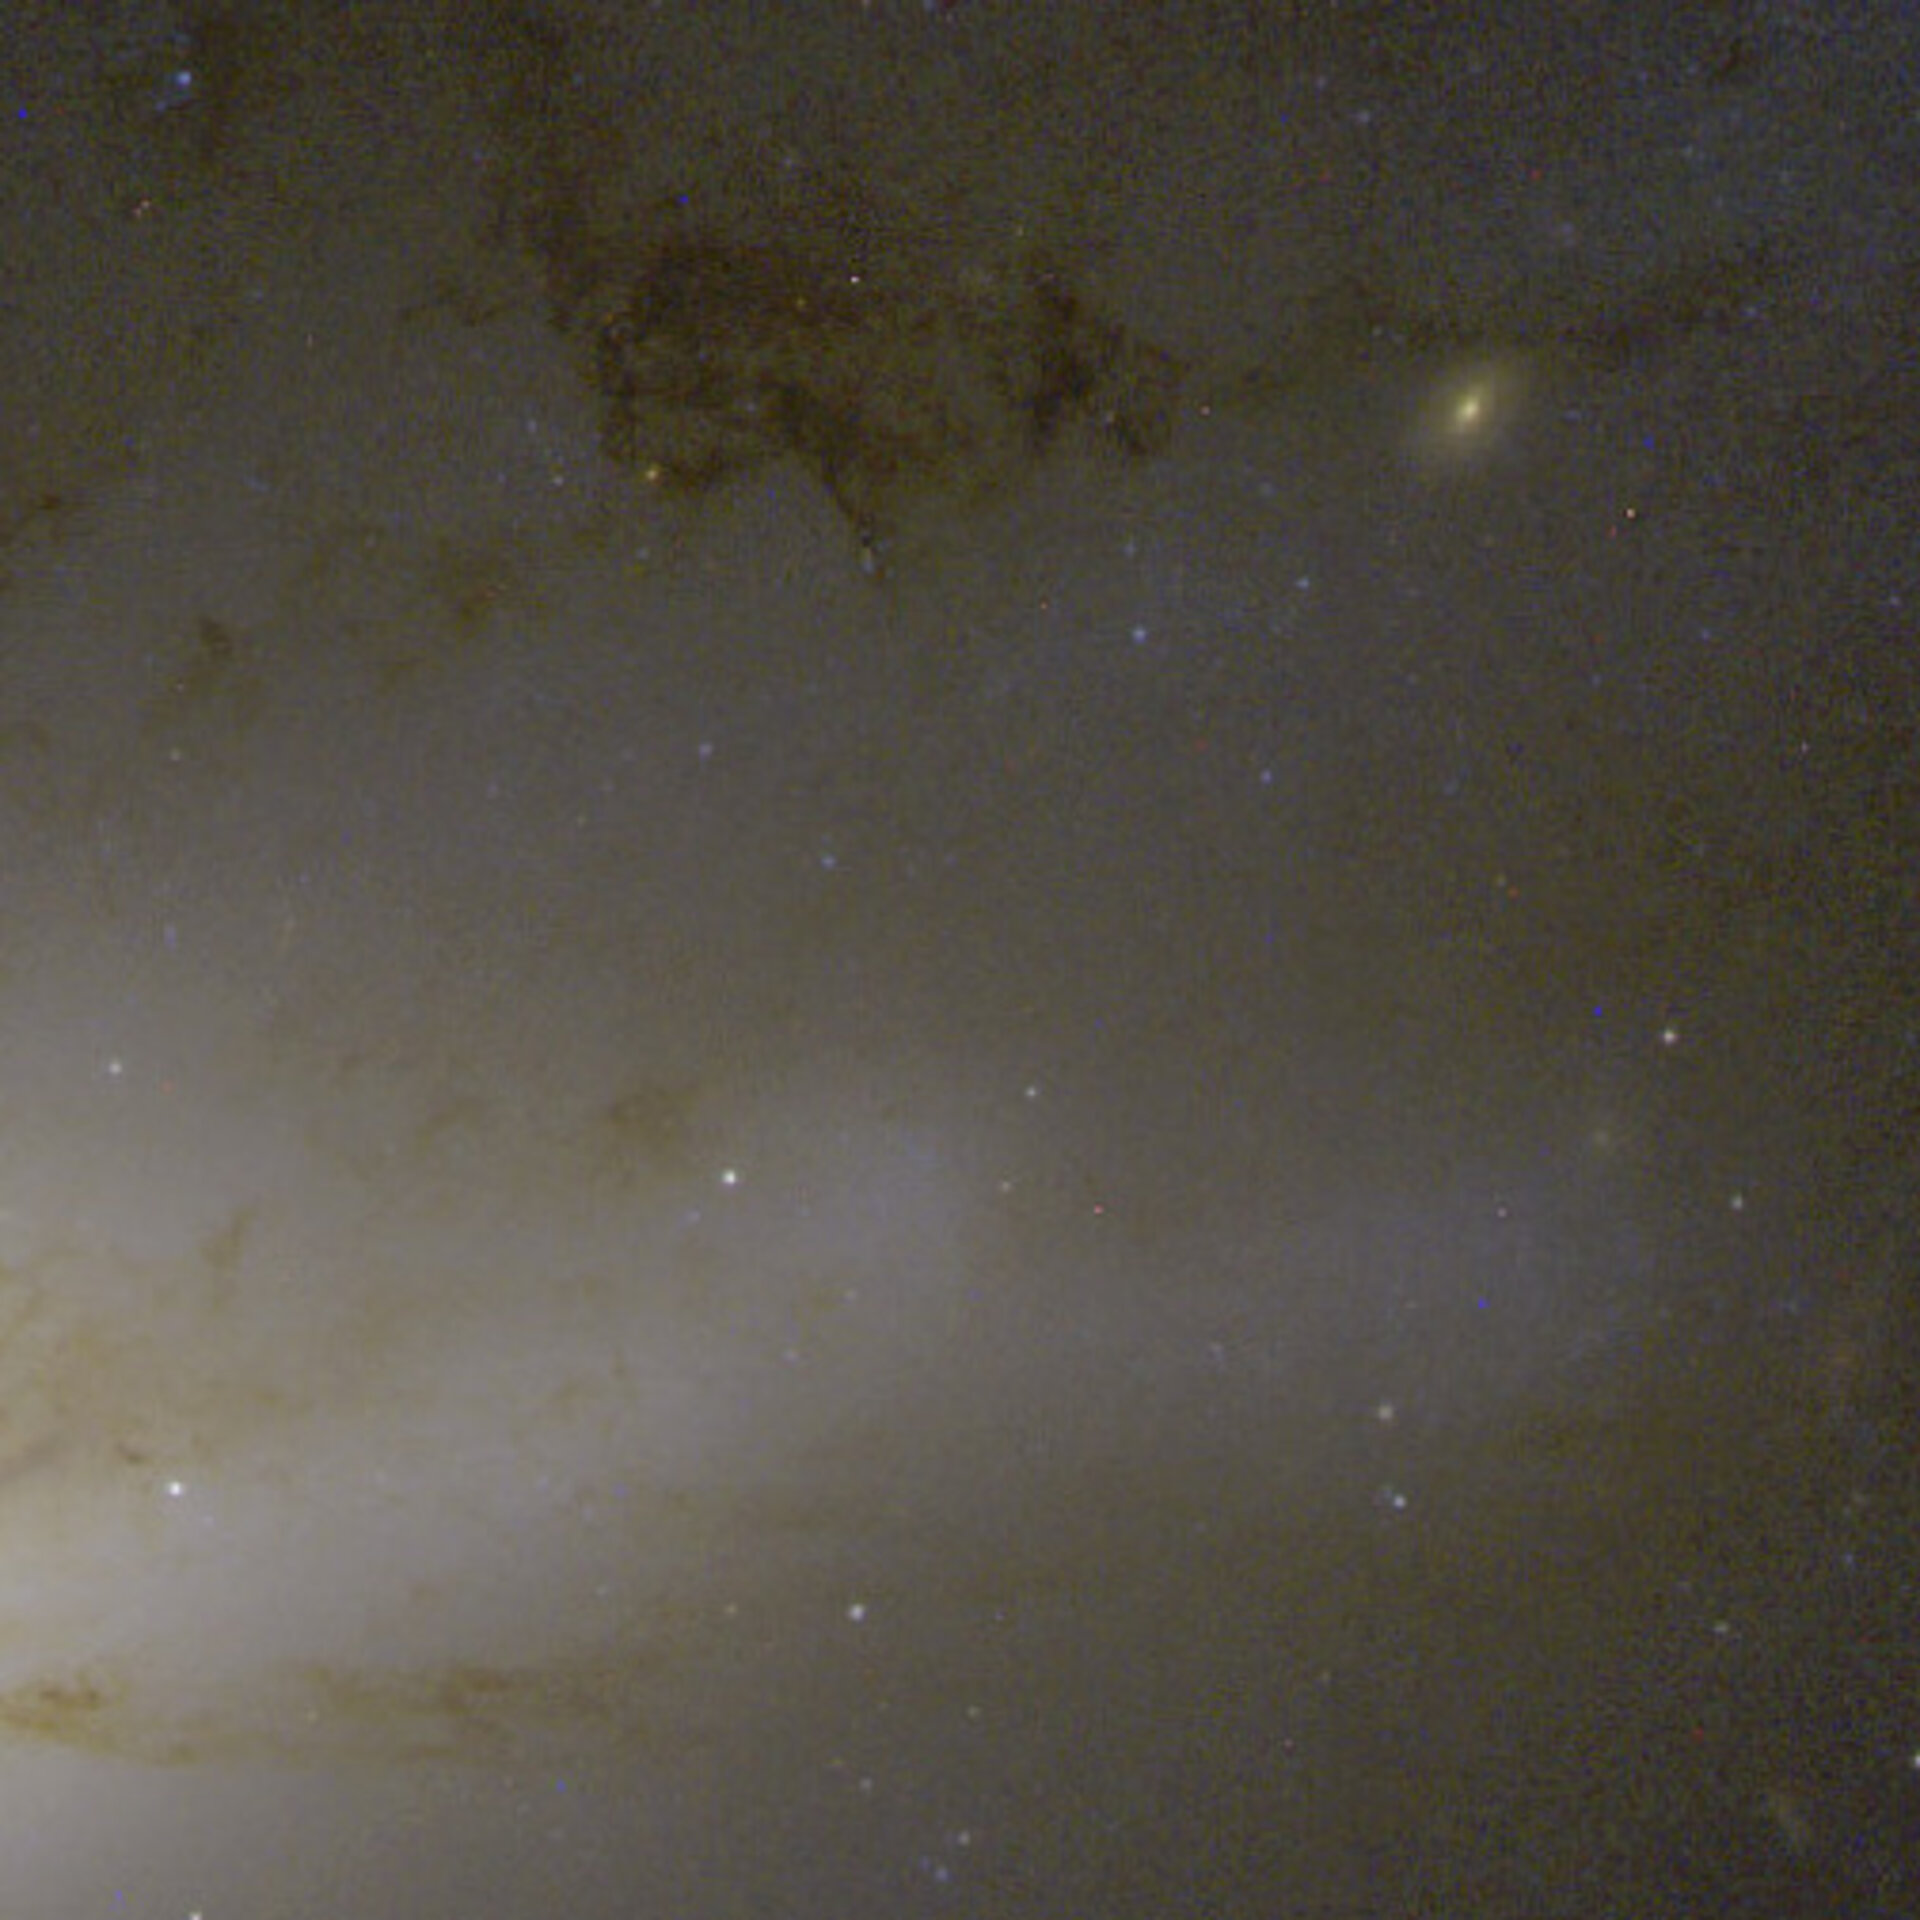 Active galaxy NGC 4438 in the Virgo Cluster, 50 million light-years from Earth